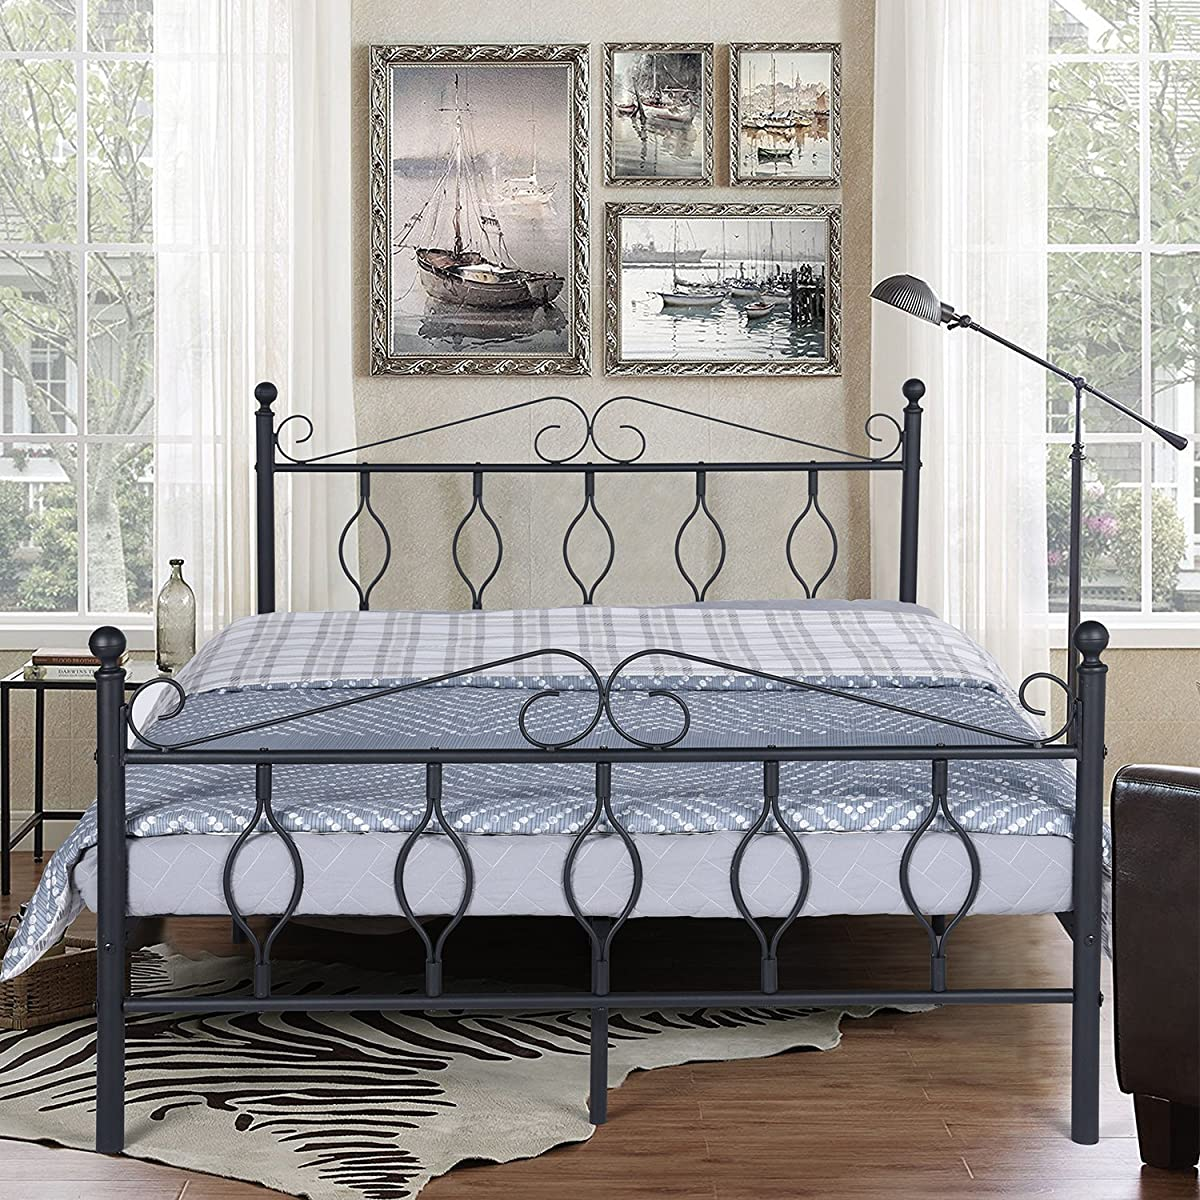 Green Forest GreenForest Full Bed Frame Metal Platform Complete Bed with Vintage Headboard and Footboard Box Spring Replacement Steel Slats Bed, Matte Black Full